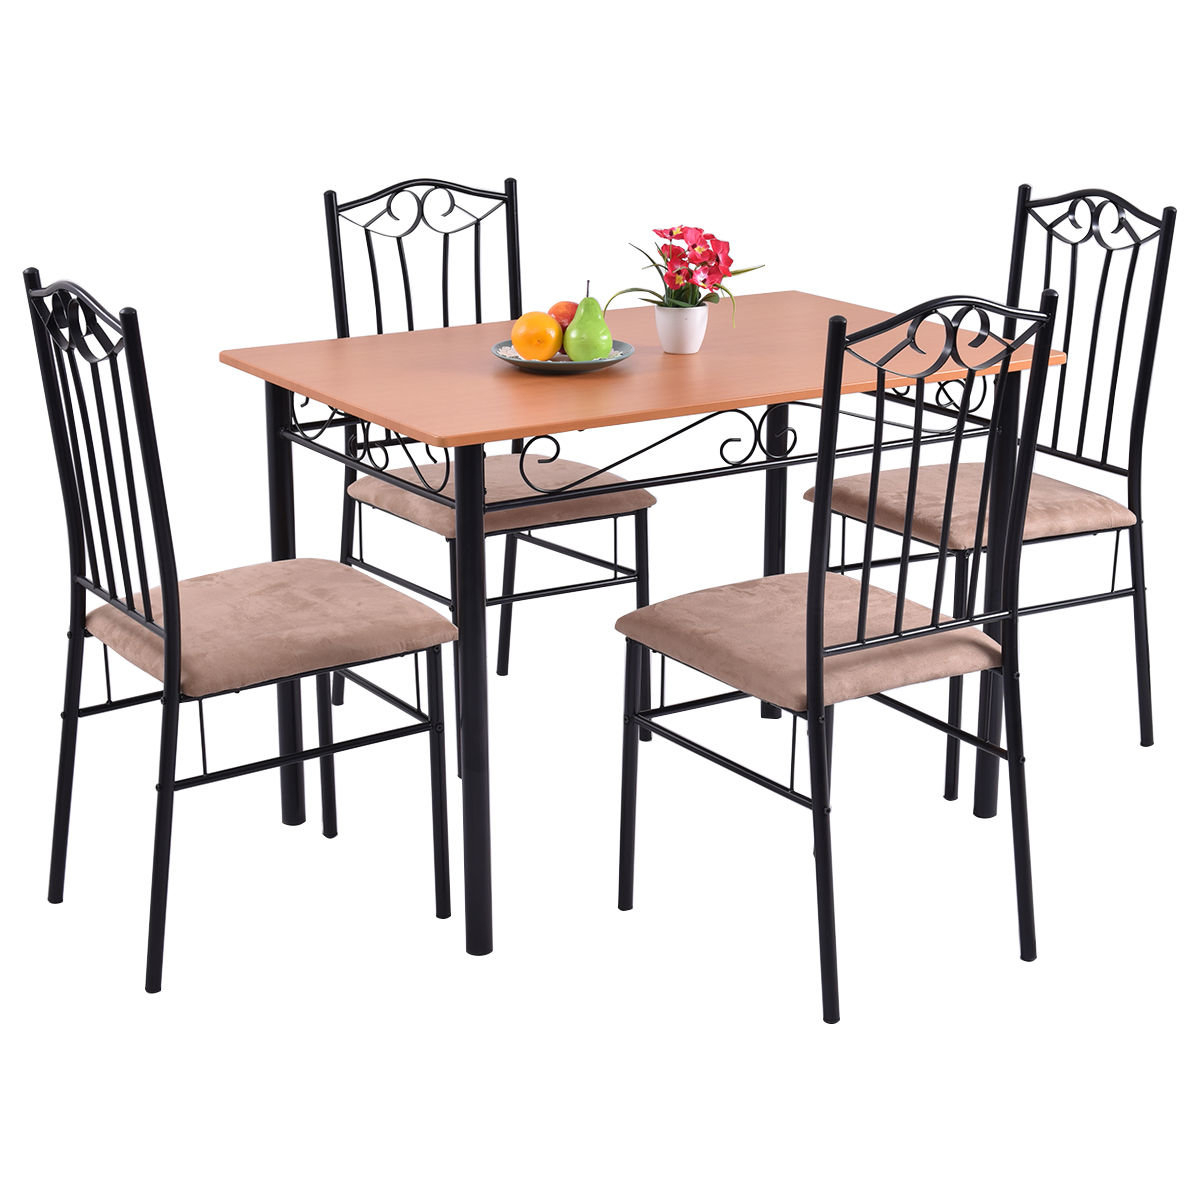 Rossi 5 Piece Dining Sets Inside Newest Rossi 5 Piece Dining Set (Gallery 1 of 20)